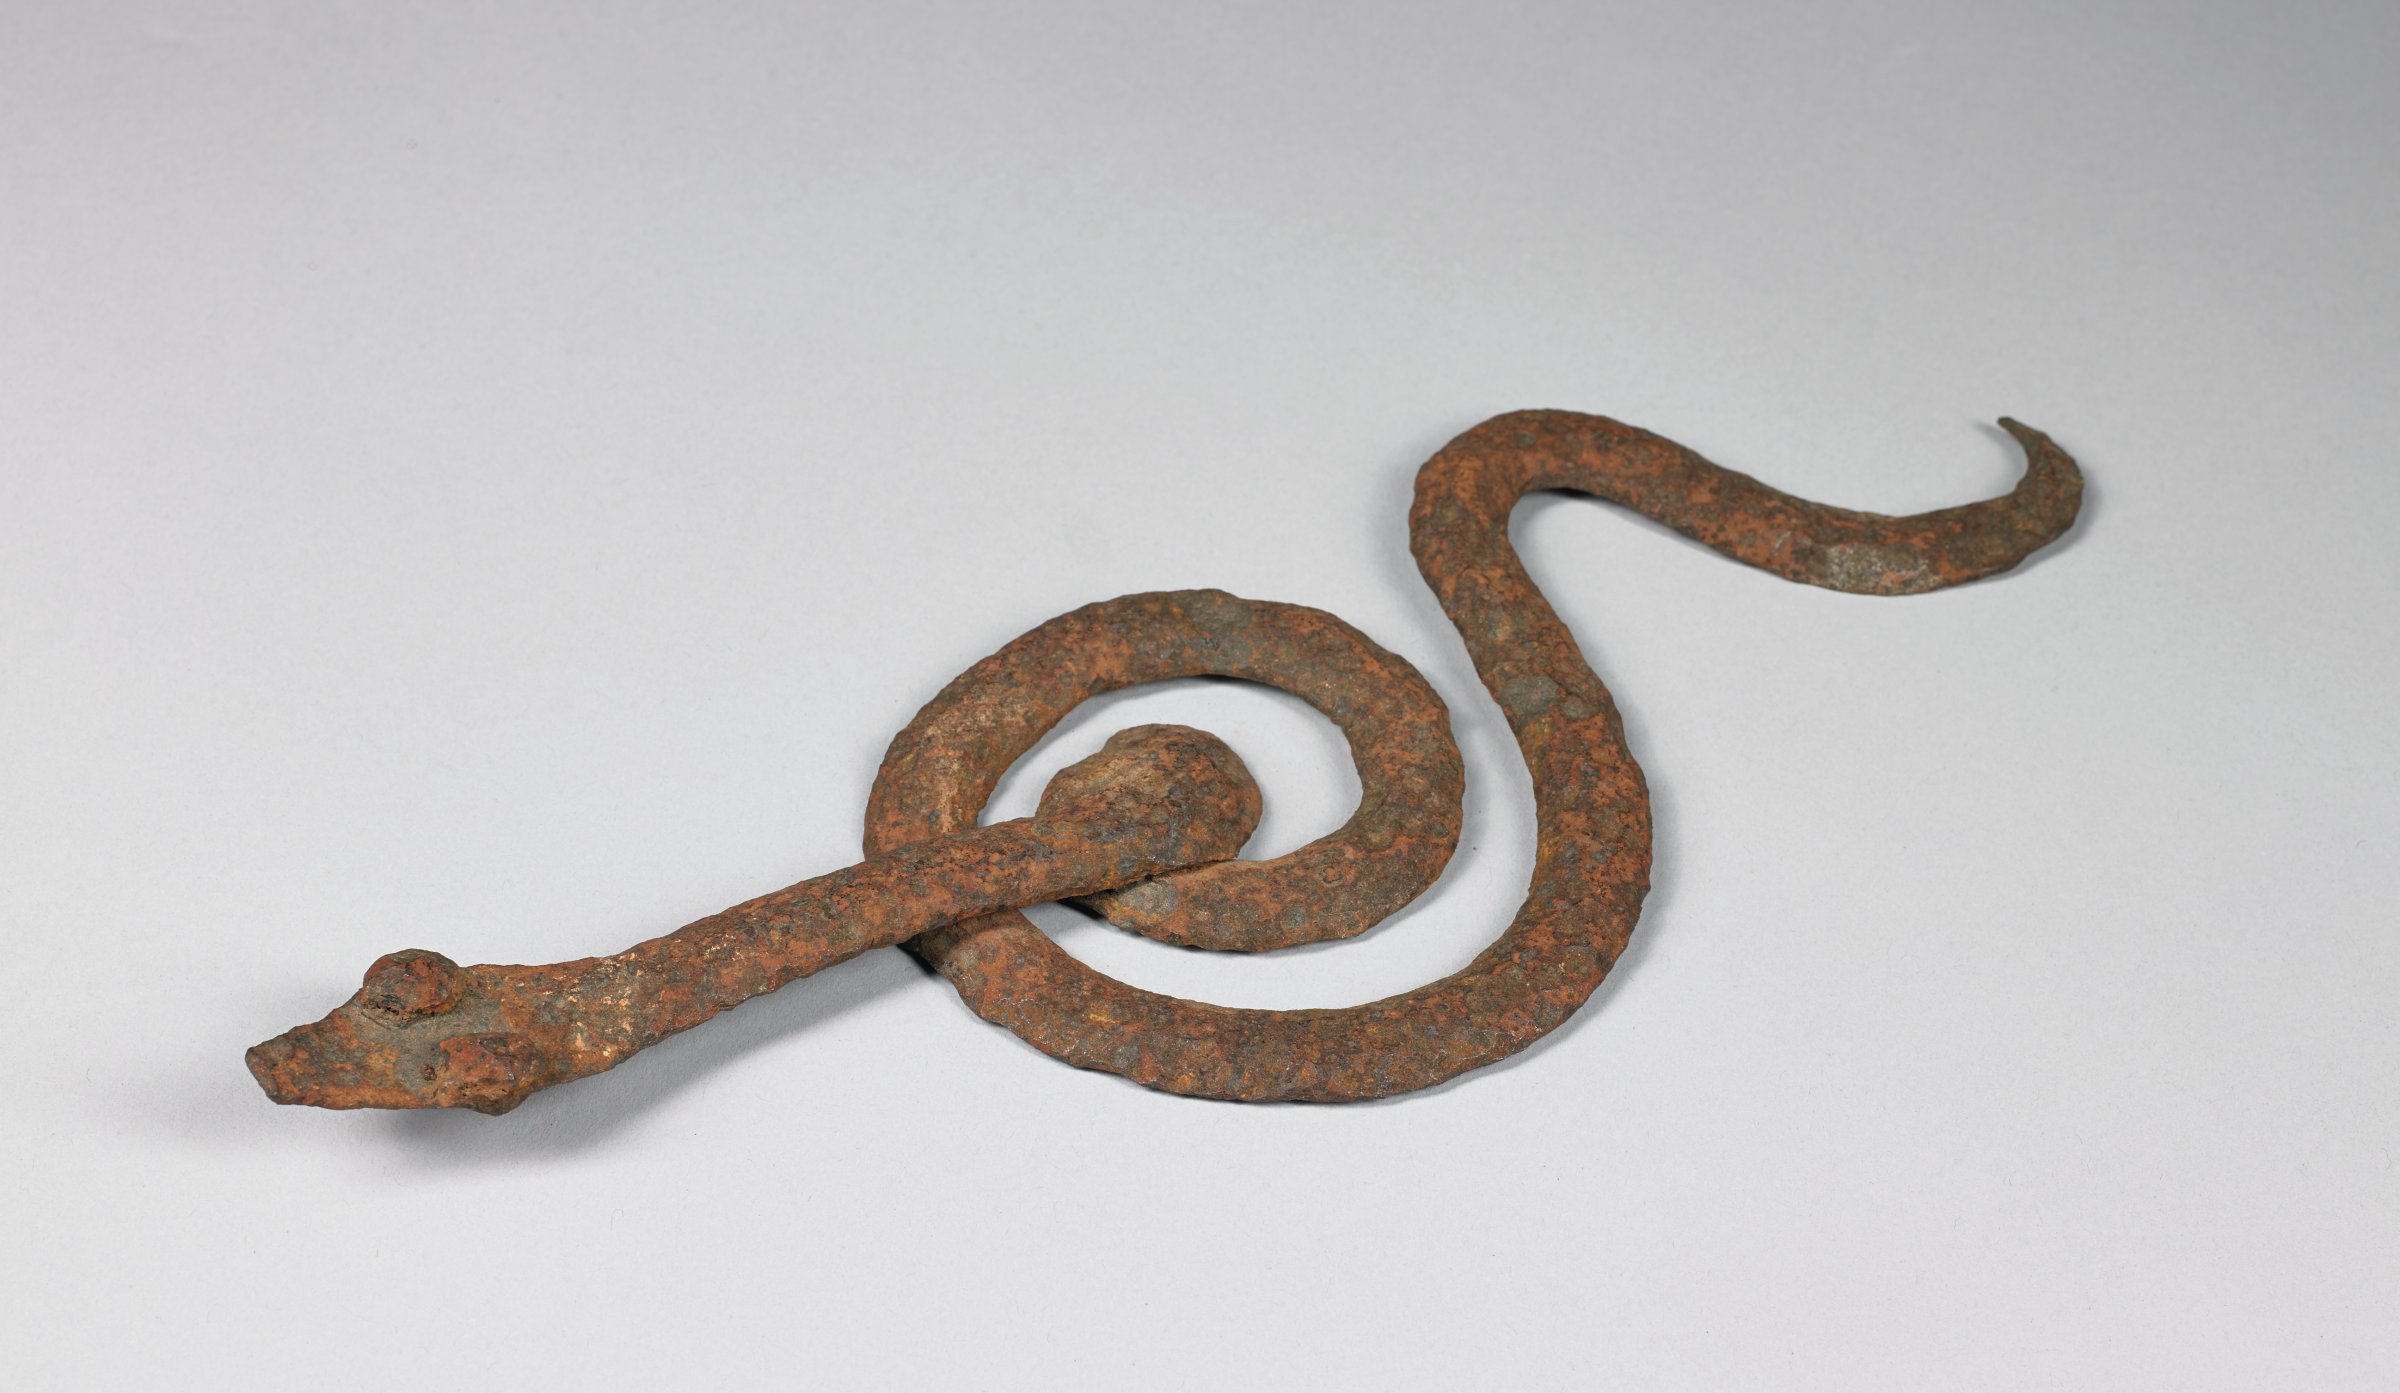 Flat serpent with head and tail emerging from central coil